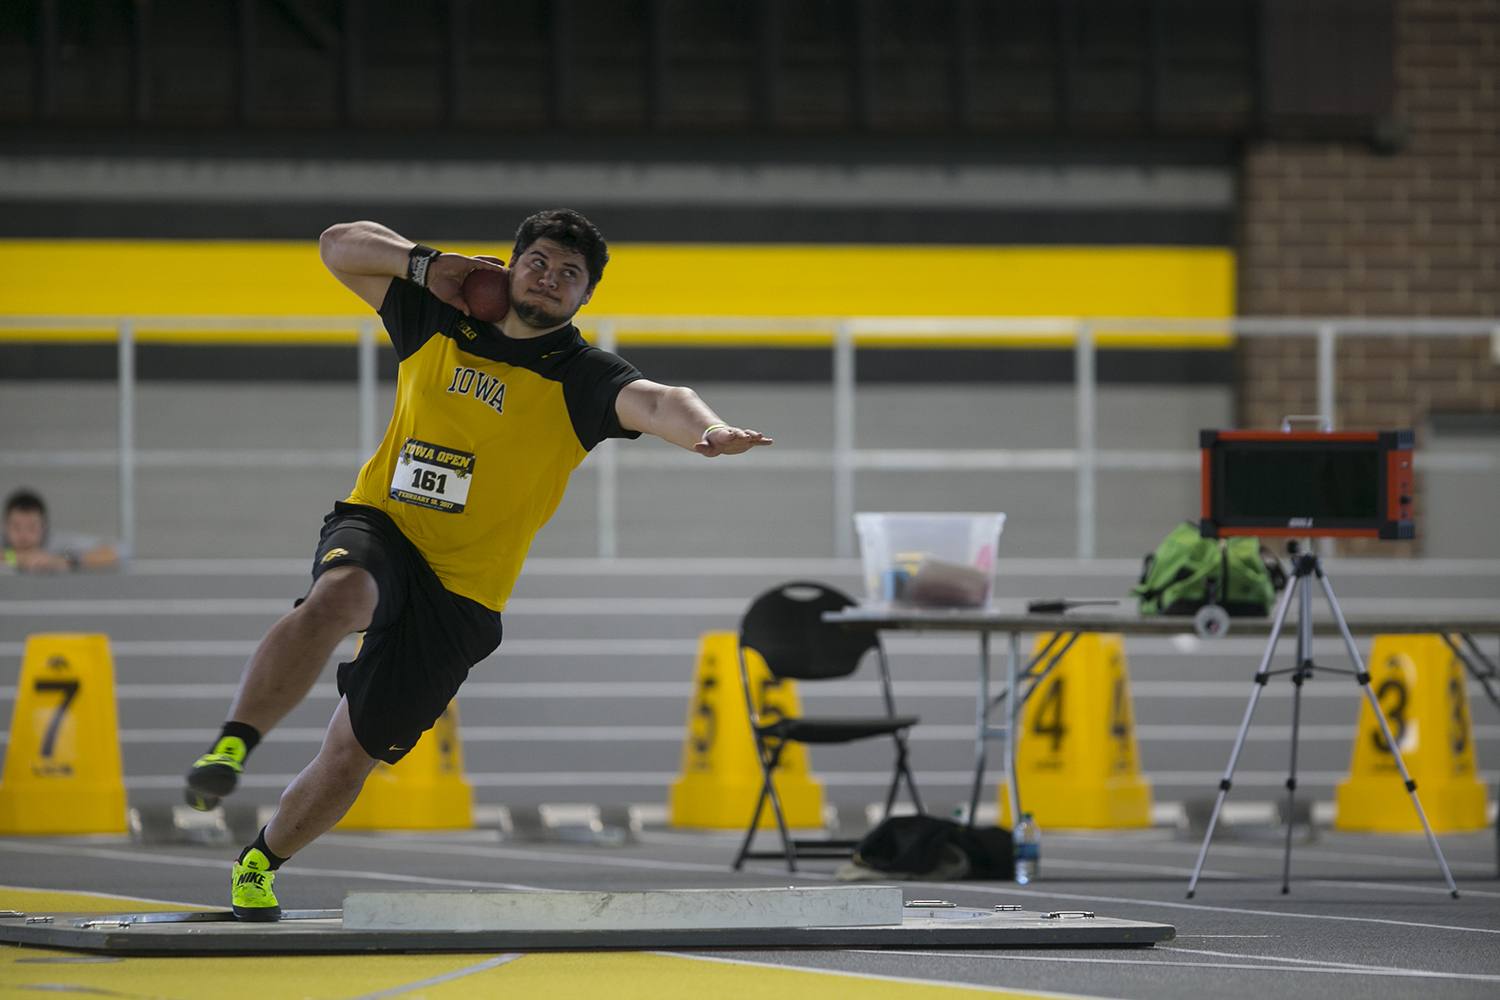 Iowa's Reno Tuufuli competes during an event in the Iowa Recreation building on Saturday, Feb. 18, 2017.